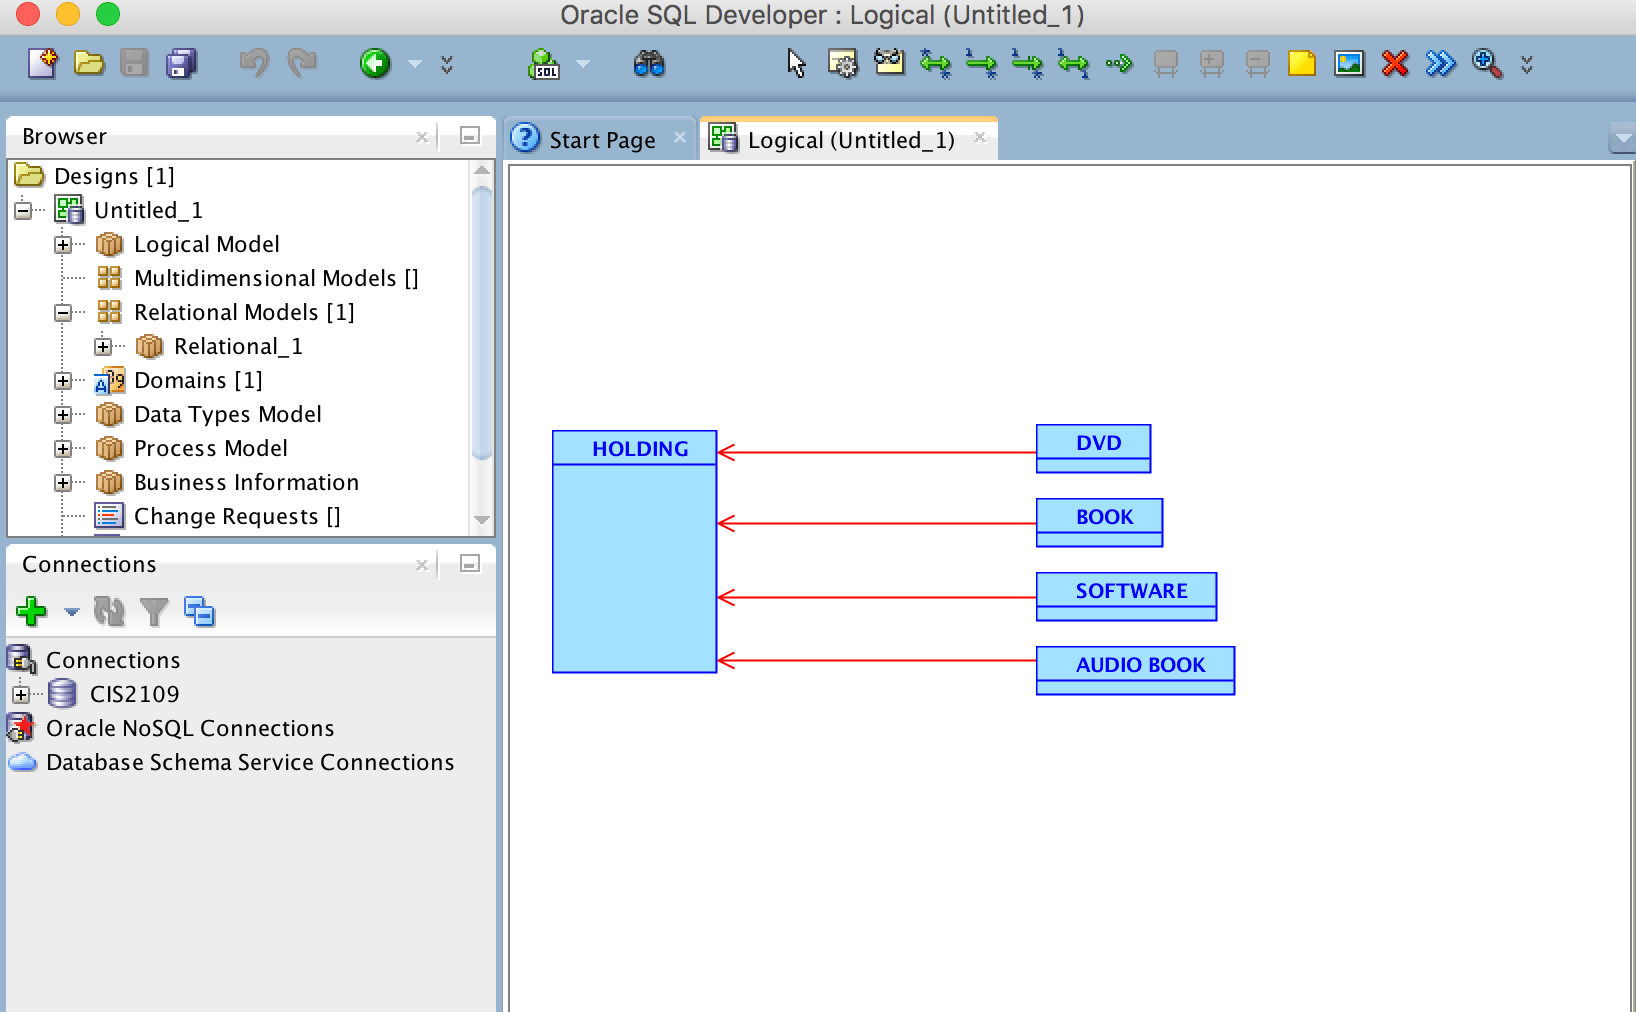 oracle sql developer entity relationship diagram three way switch wiring power at light table brokeasshome